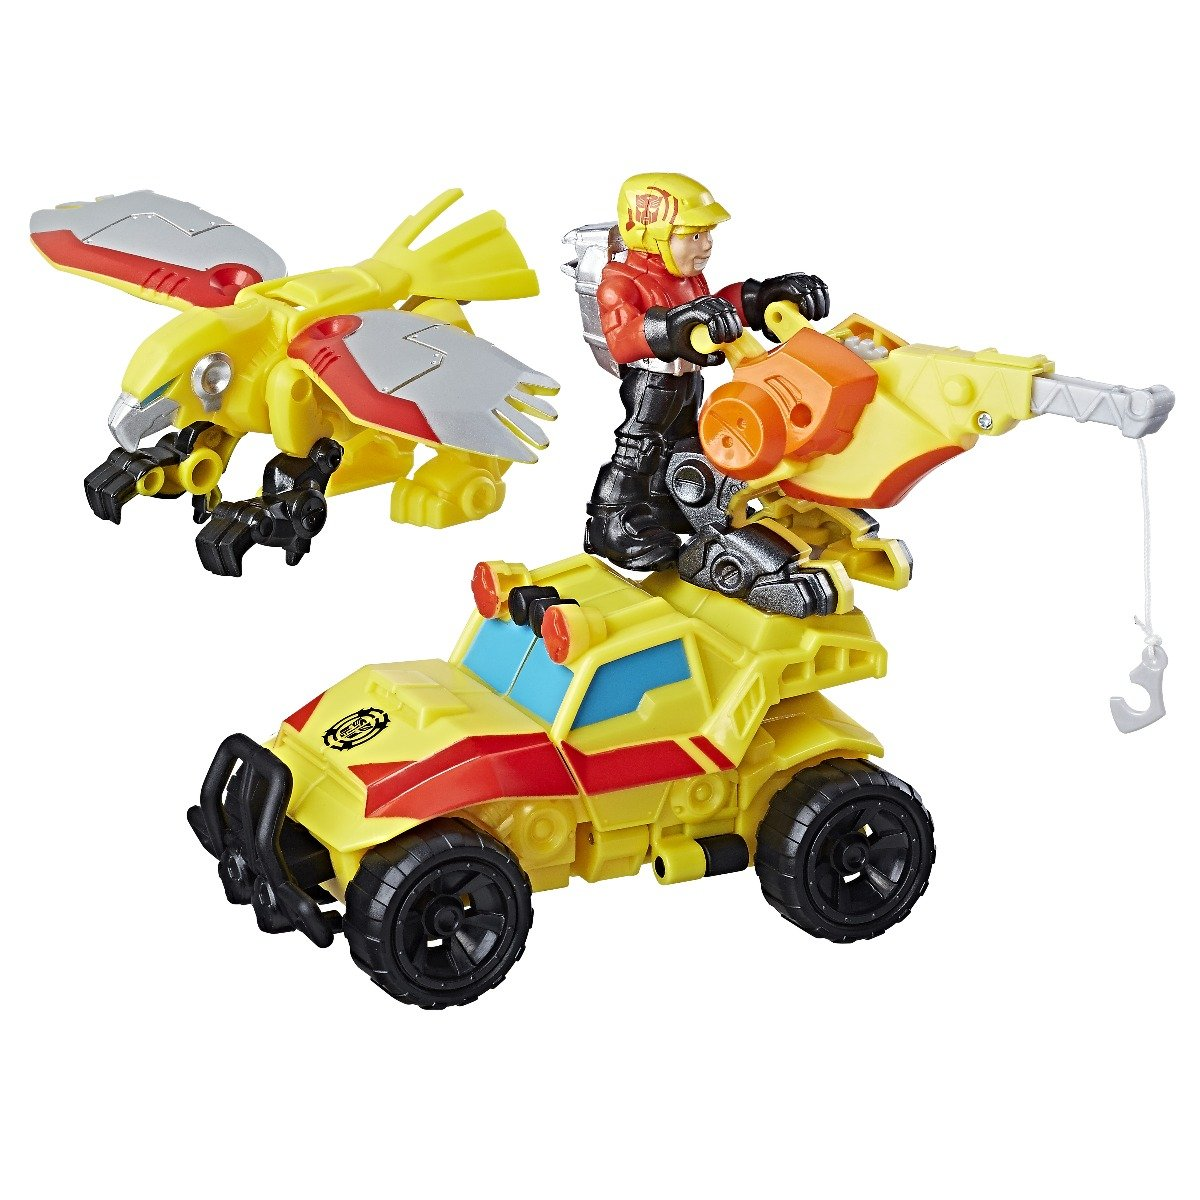 set transformers - echipa de salvare a lui bumblebee, rock rescue team